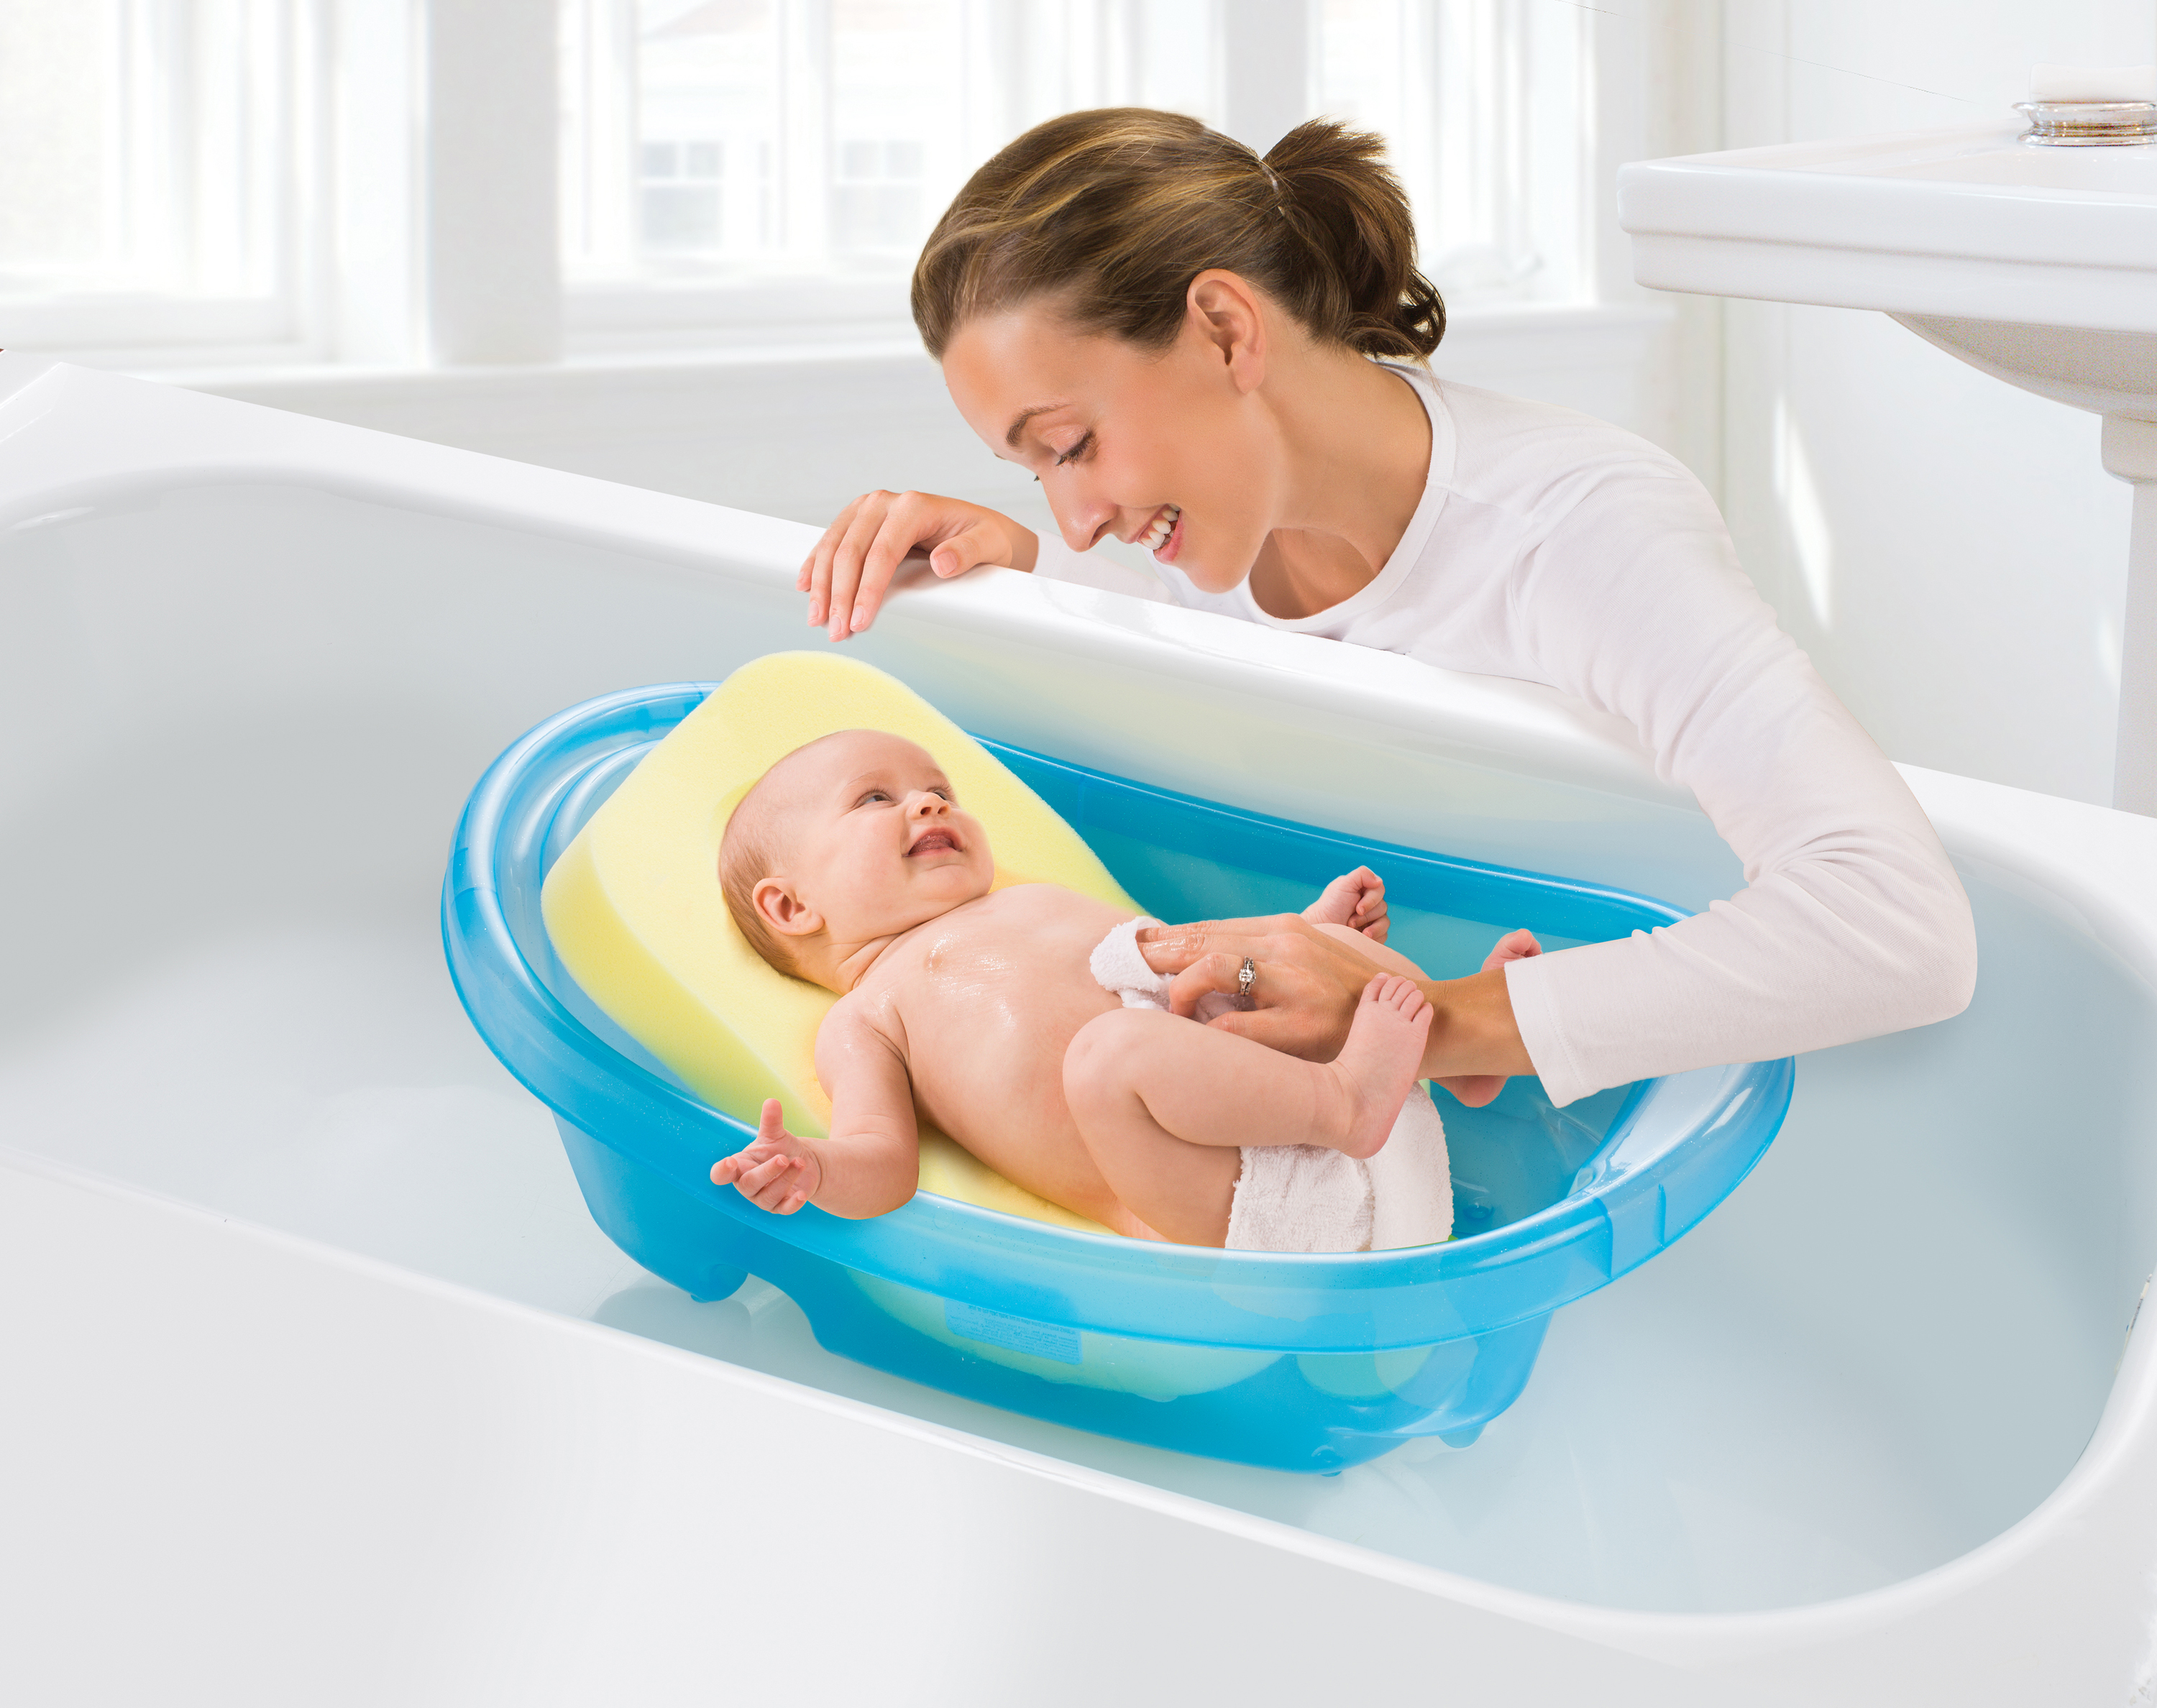 Home Decorating Blogs Comfy Bath Sponge Summer Infant Baby Products